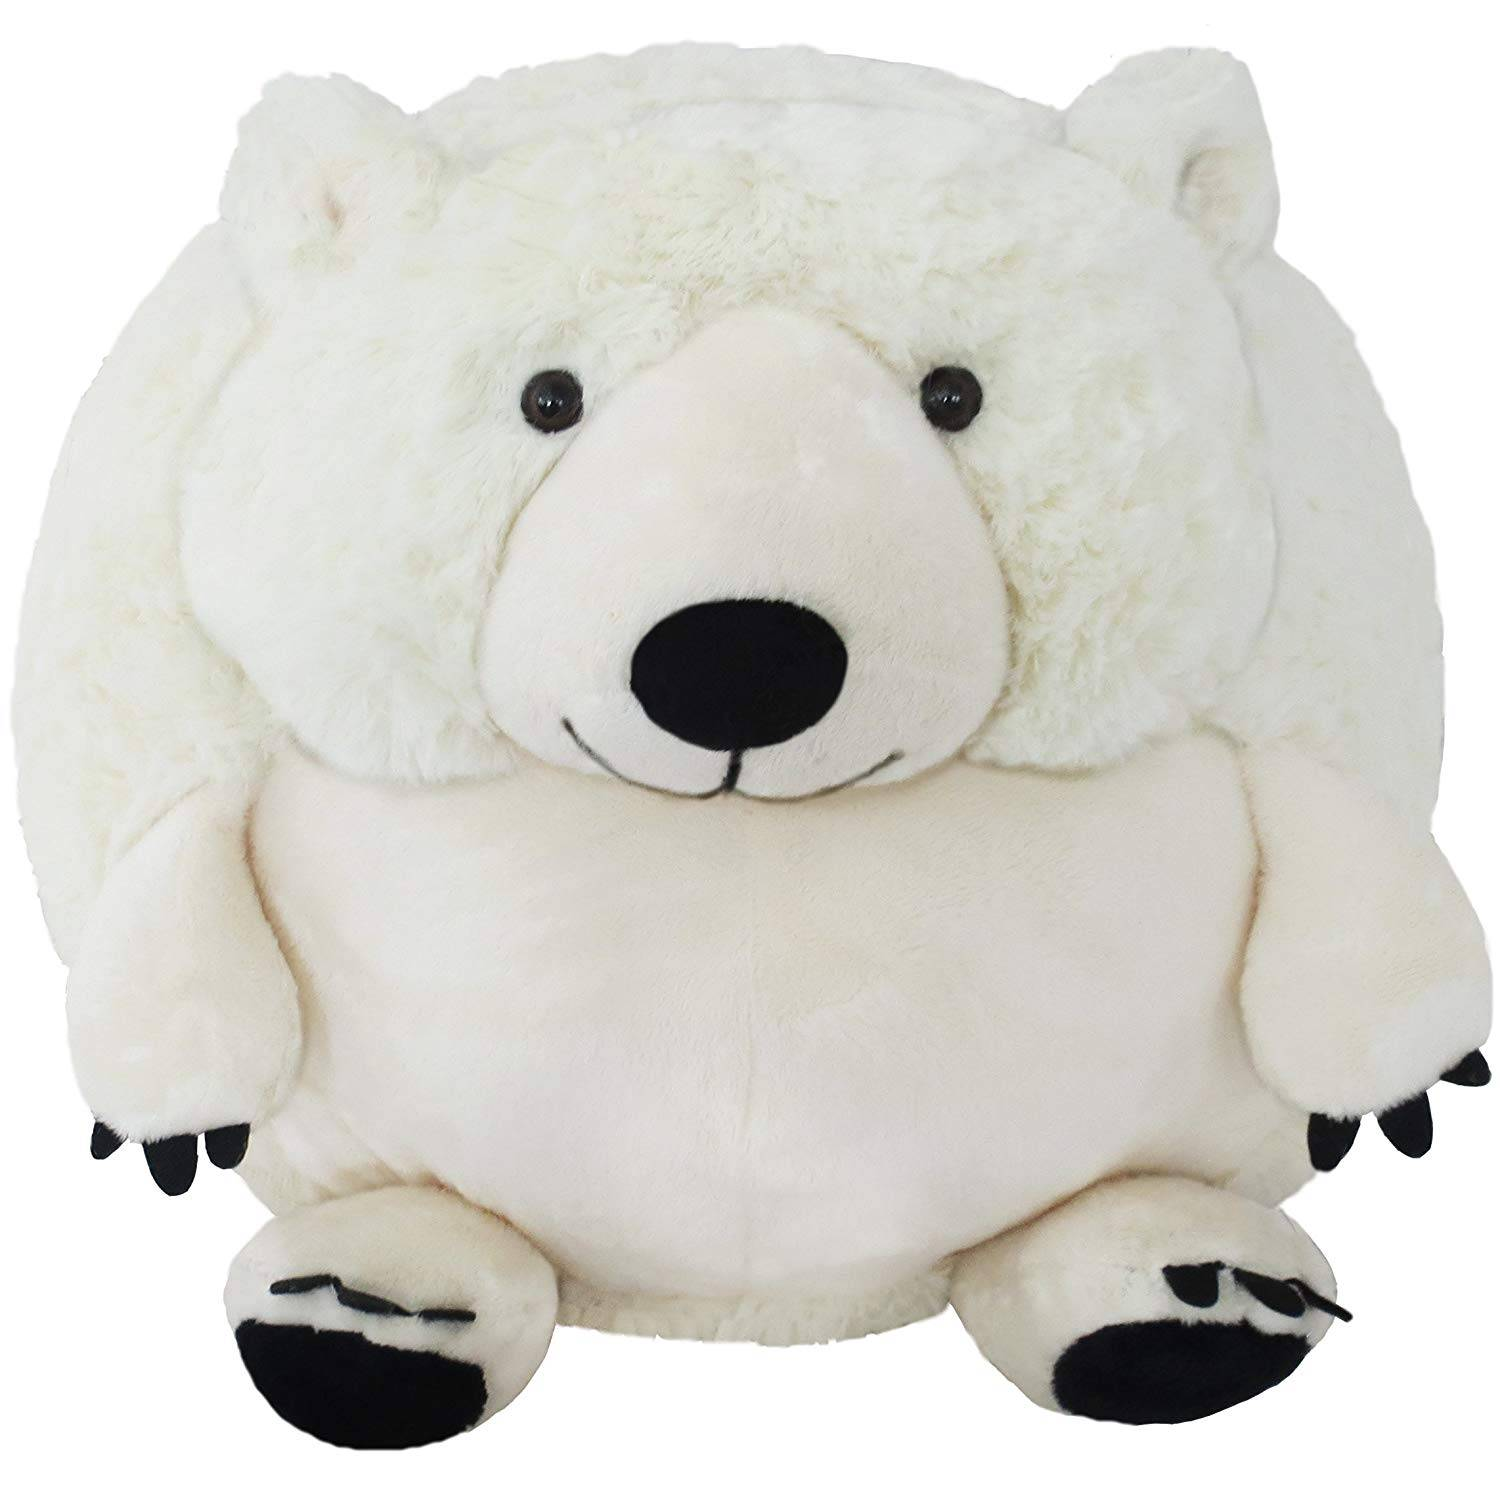 supply OEM velboa plush white bear toy round plush bear promotional gift